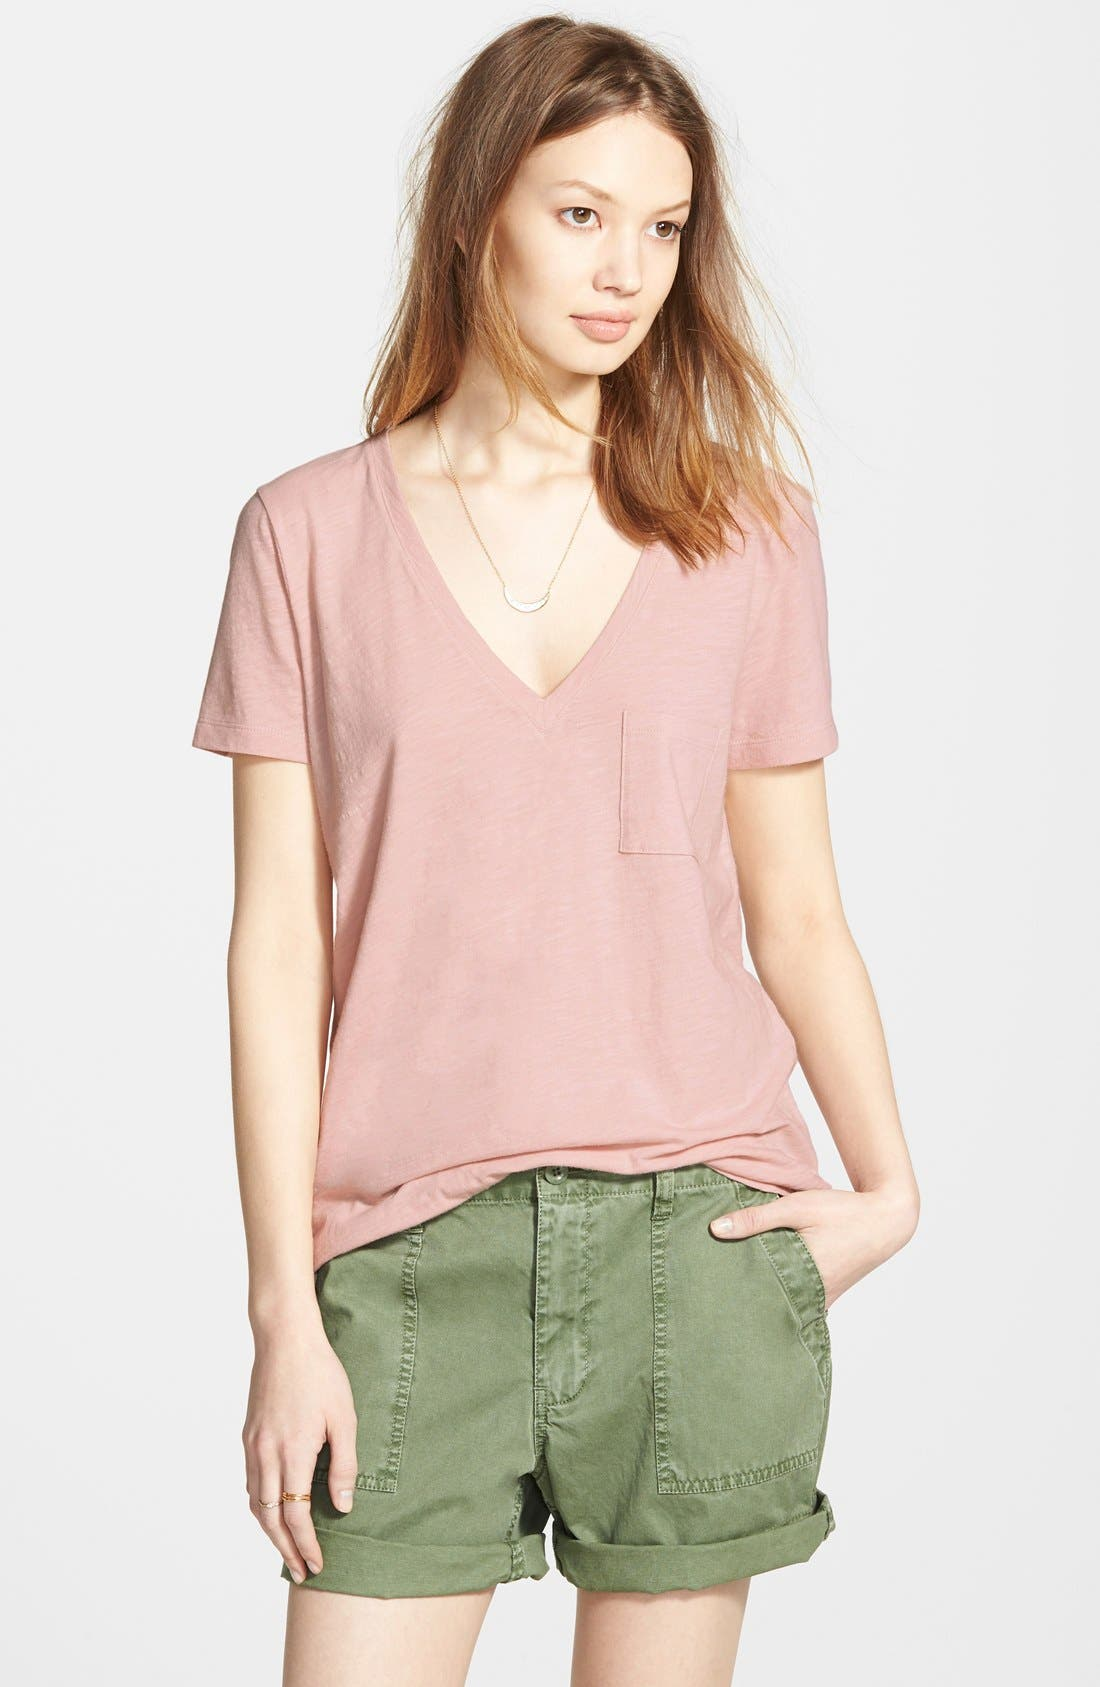 Madewell 'Whisper' Cotton V-Neck Pocket Tee